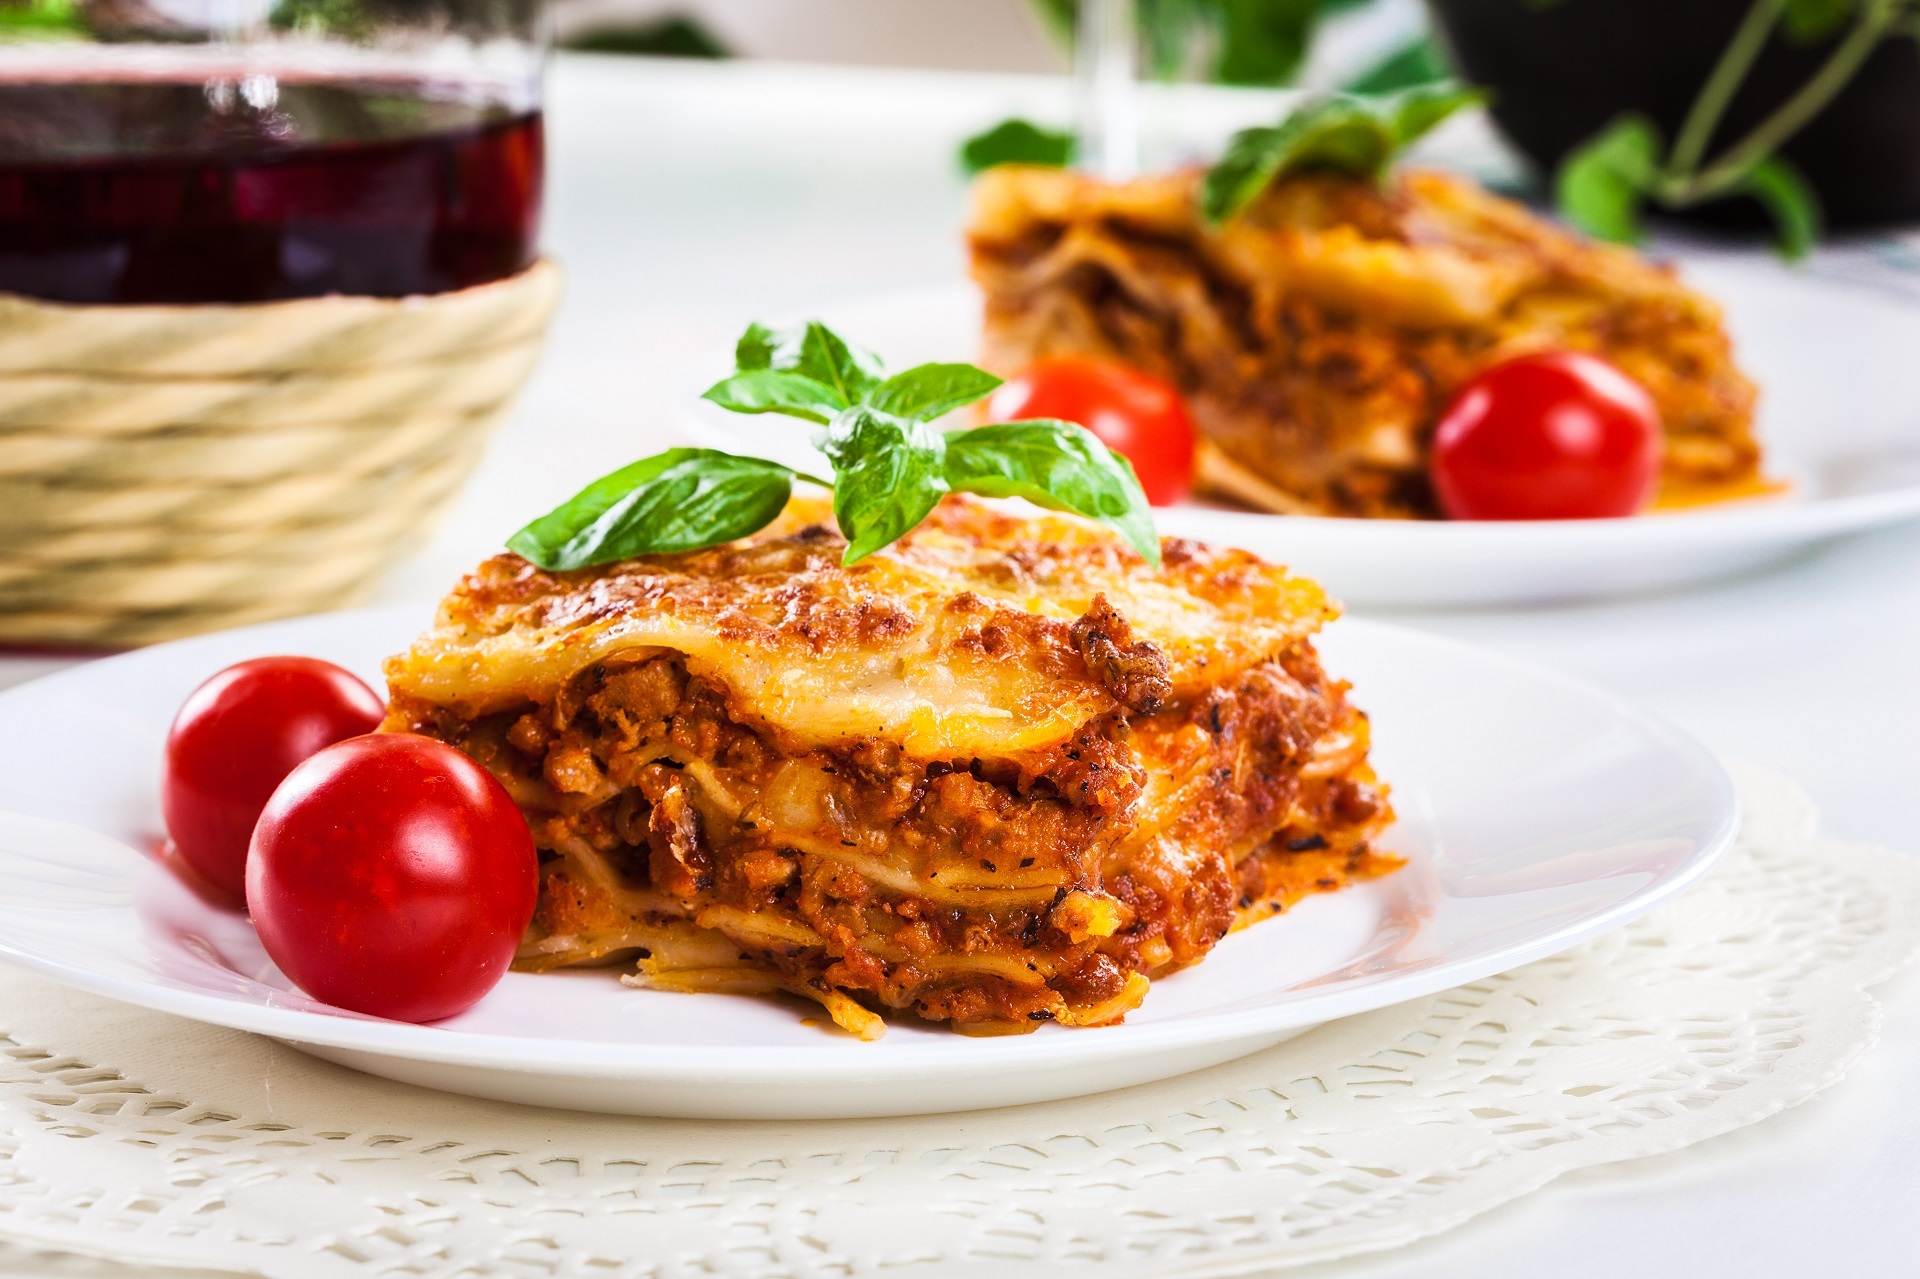 Lasagna is a type of pasta.